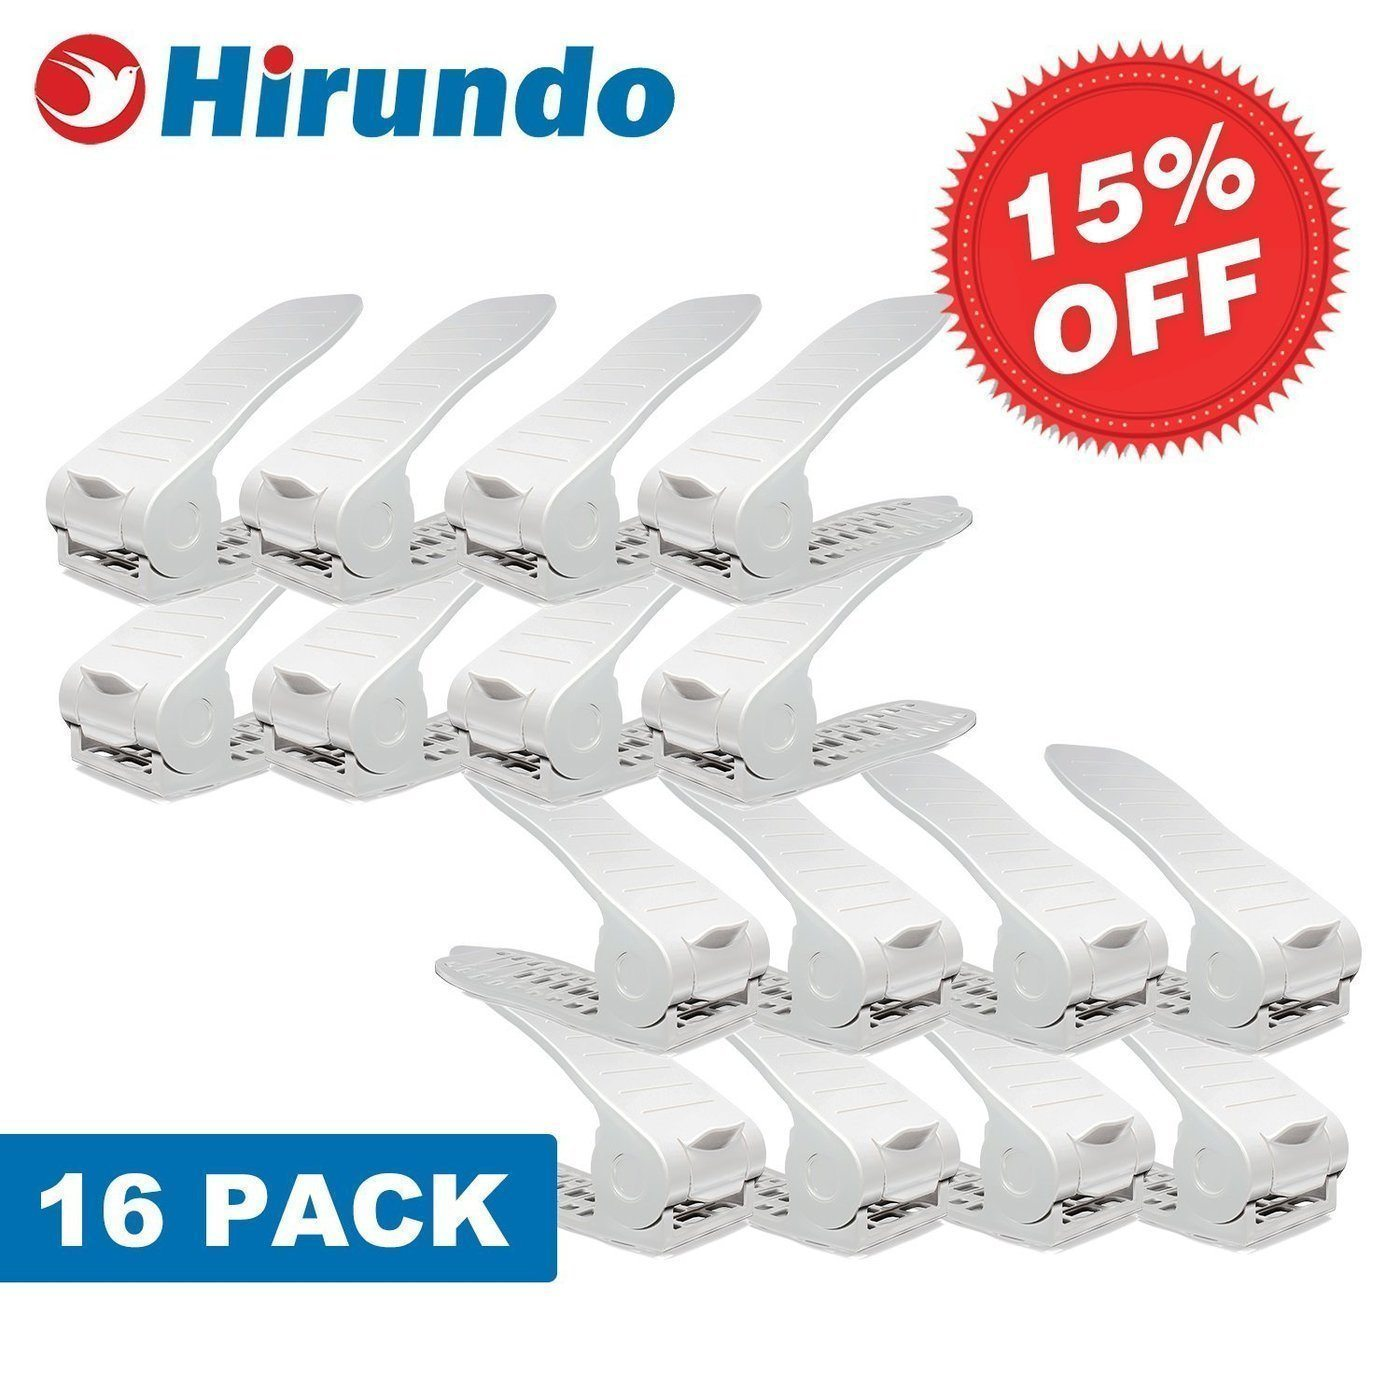 Hirundo Adjustable Shoe Rack Space Saver (White/Black)